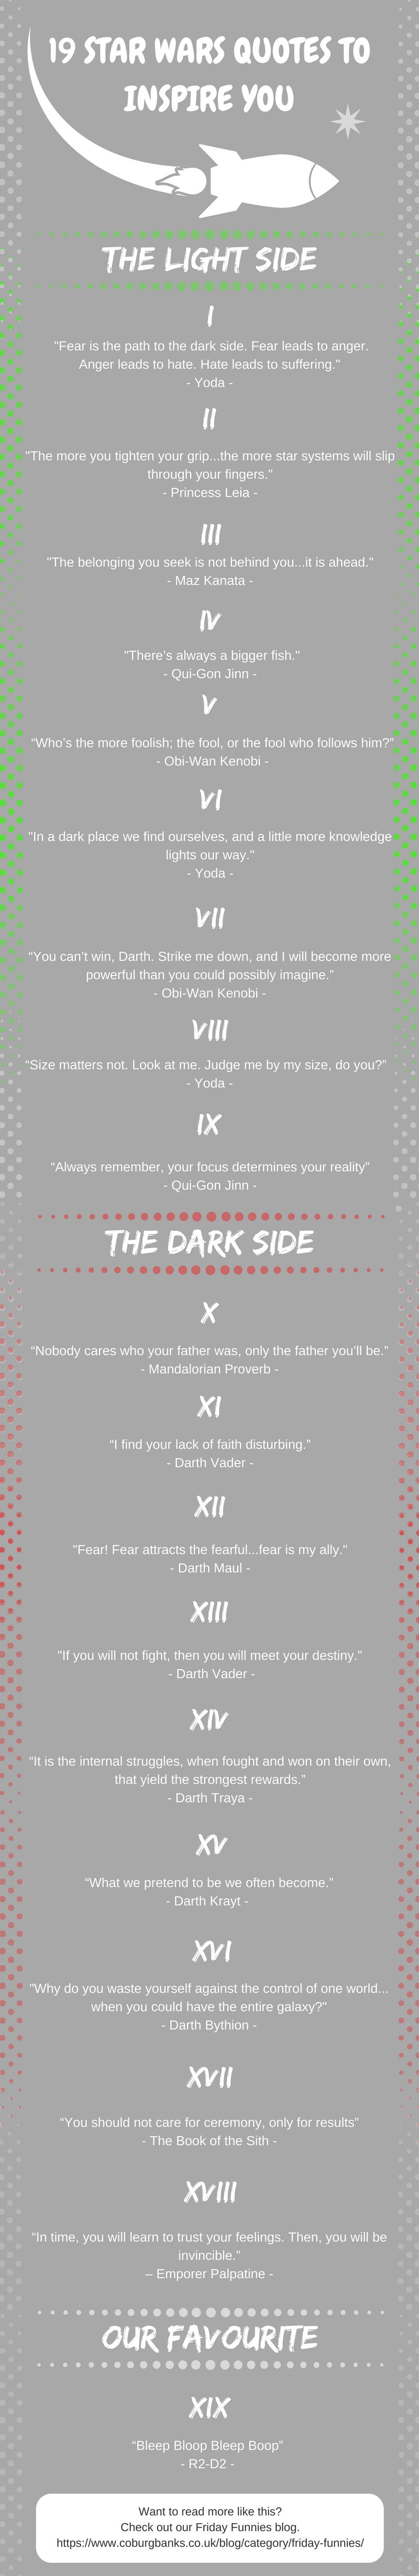 19 Star Wars Quotes To Inspire You Today Infographic